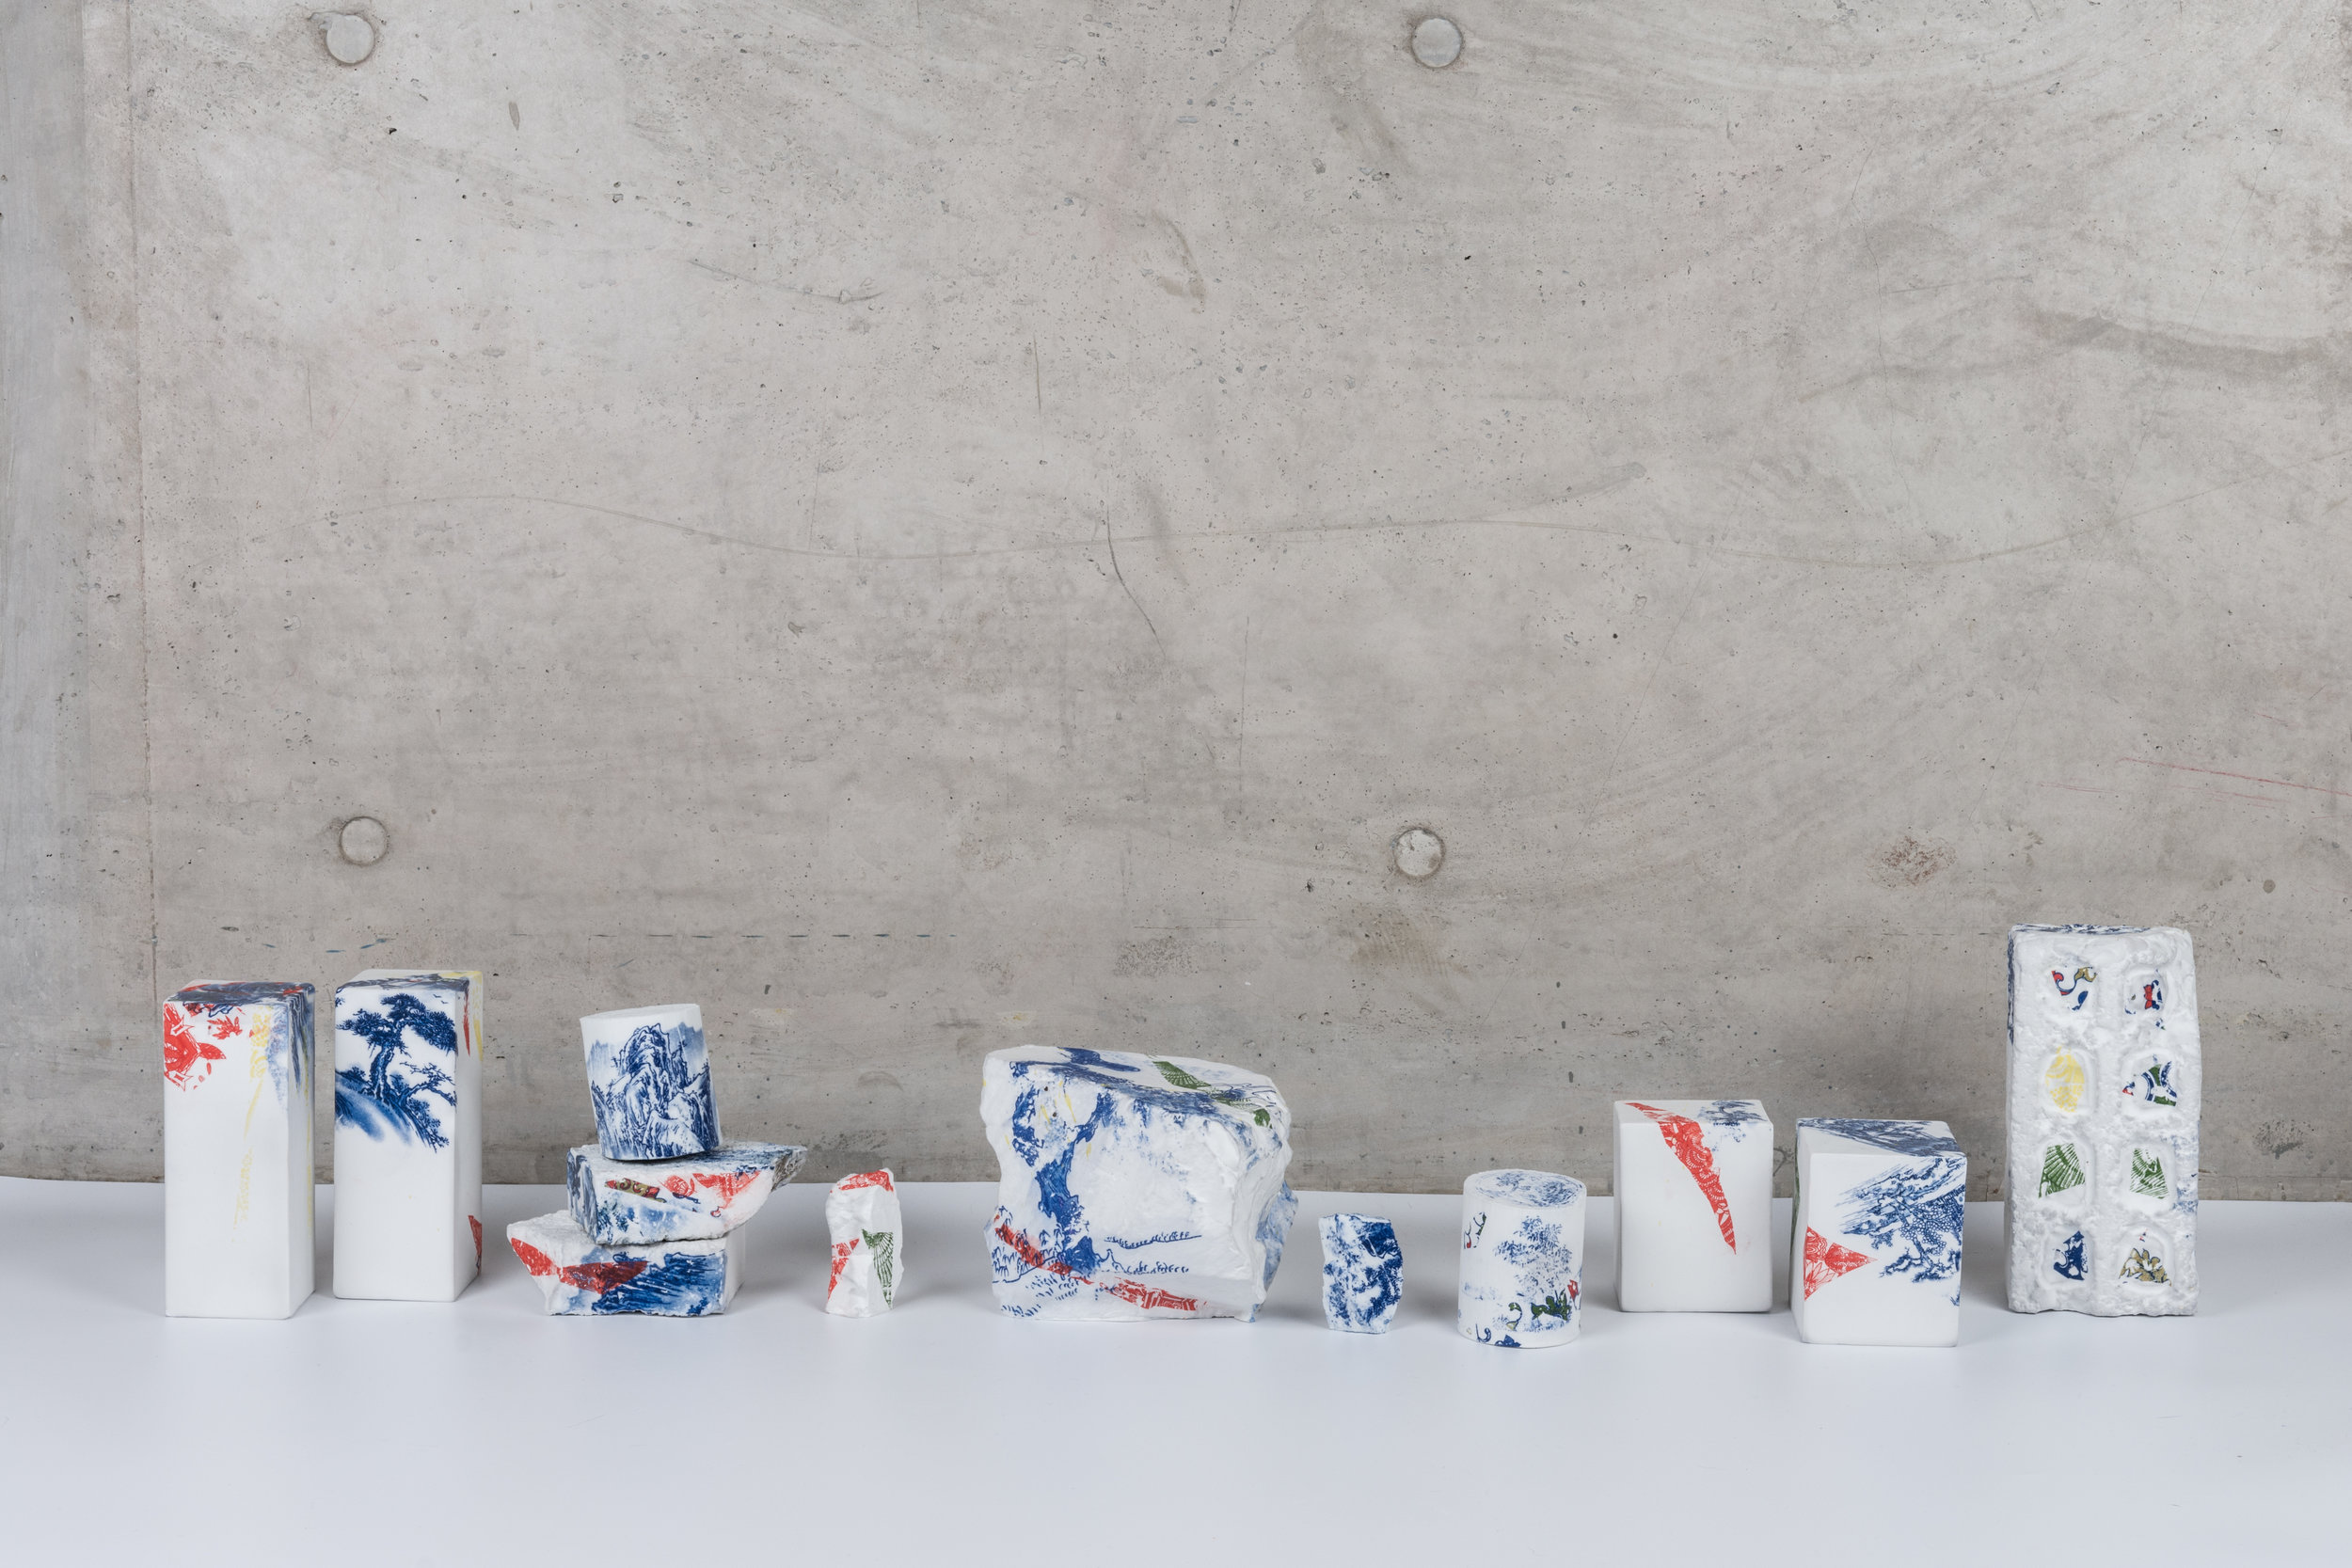 Renqian Yang,  Landscapes Deconstruct I , 2018, Porcelain, fire to 1300C, gas reduction, Various dimension, 12 pieces © Renqian Yang, courtesy Fou Gallery